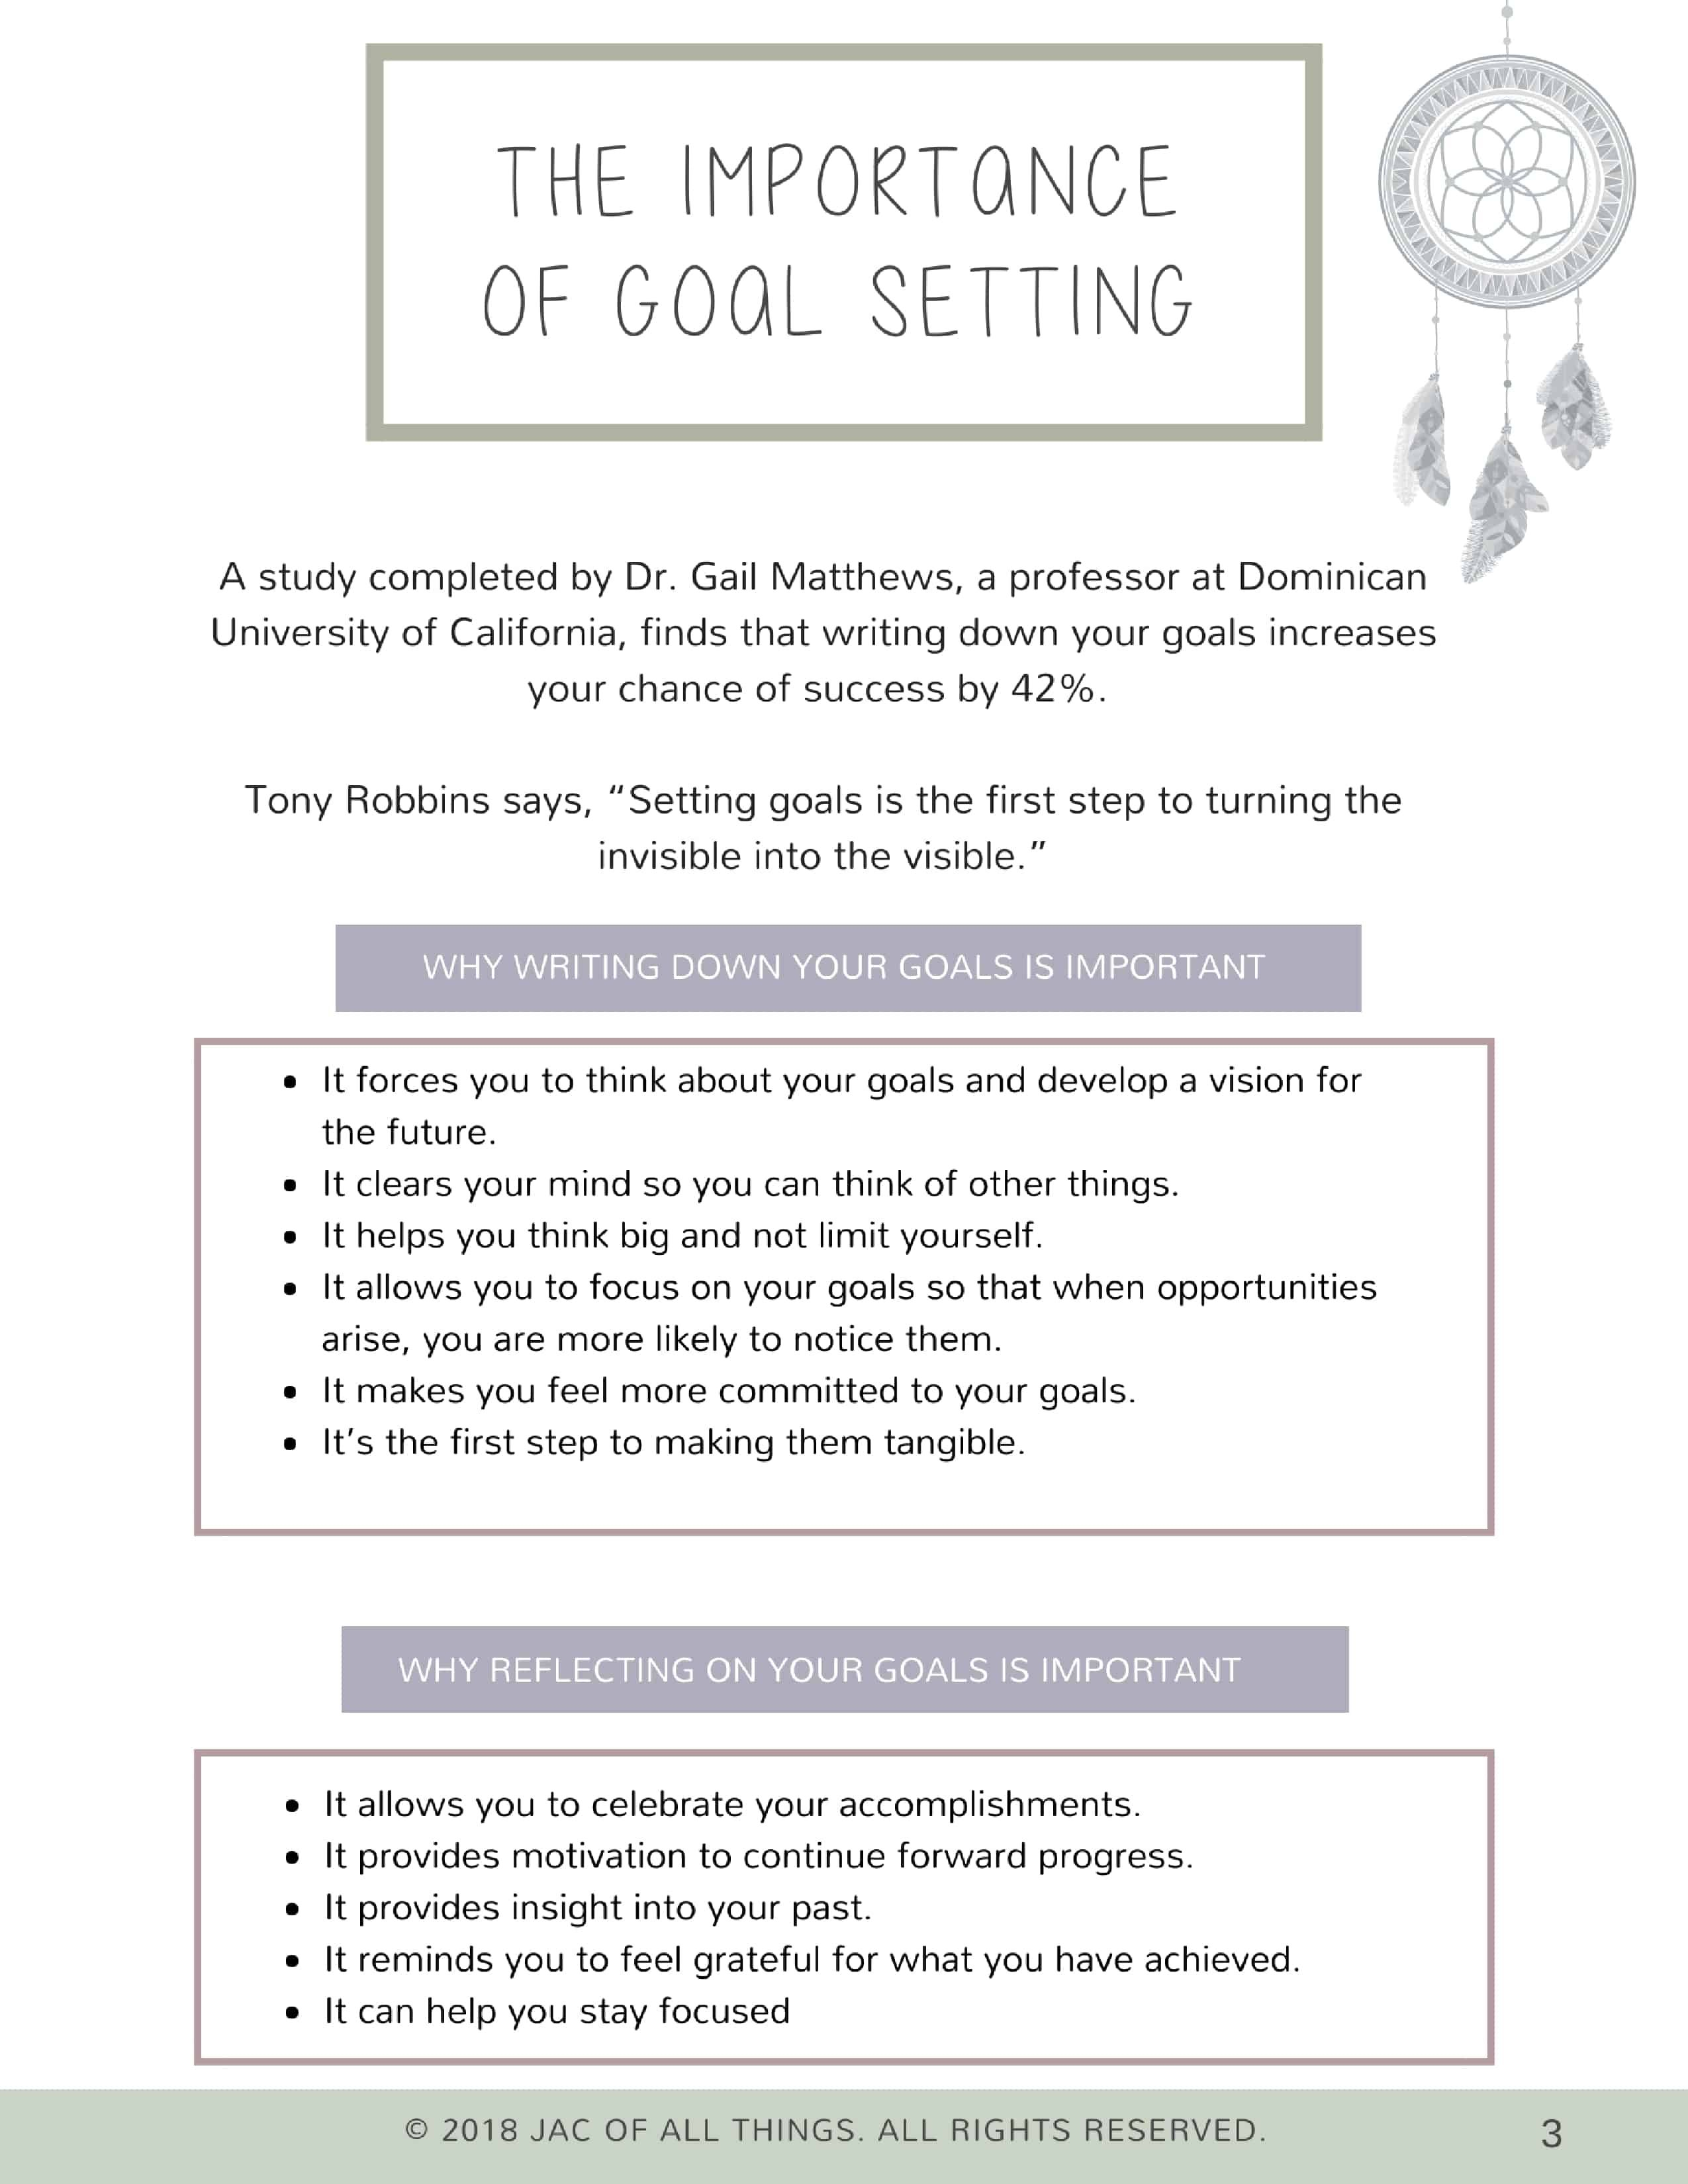 Goal Setting Worksheets How To Turn Your Dreams Into Your Reality Free Printable Goals Template Goal Setting Worksheet Goals Worksheet